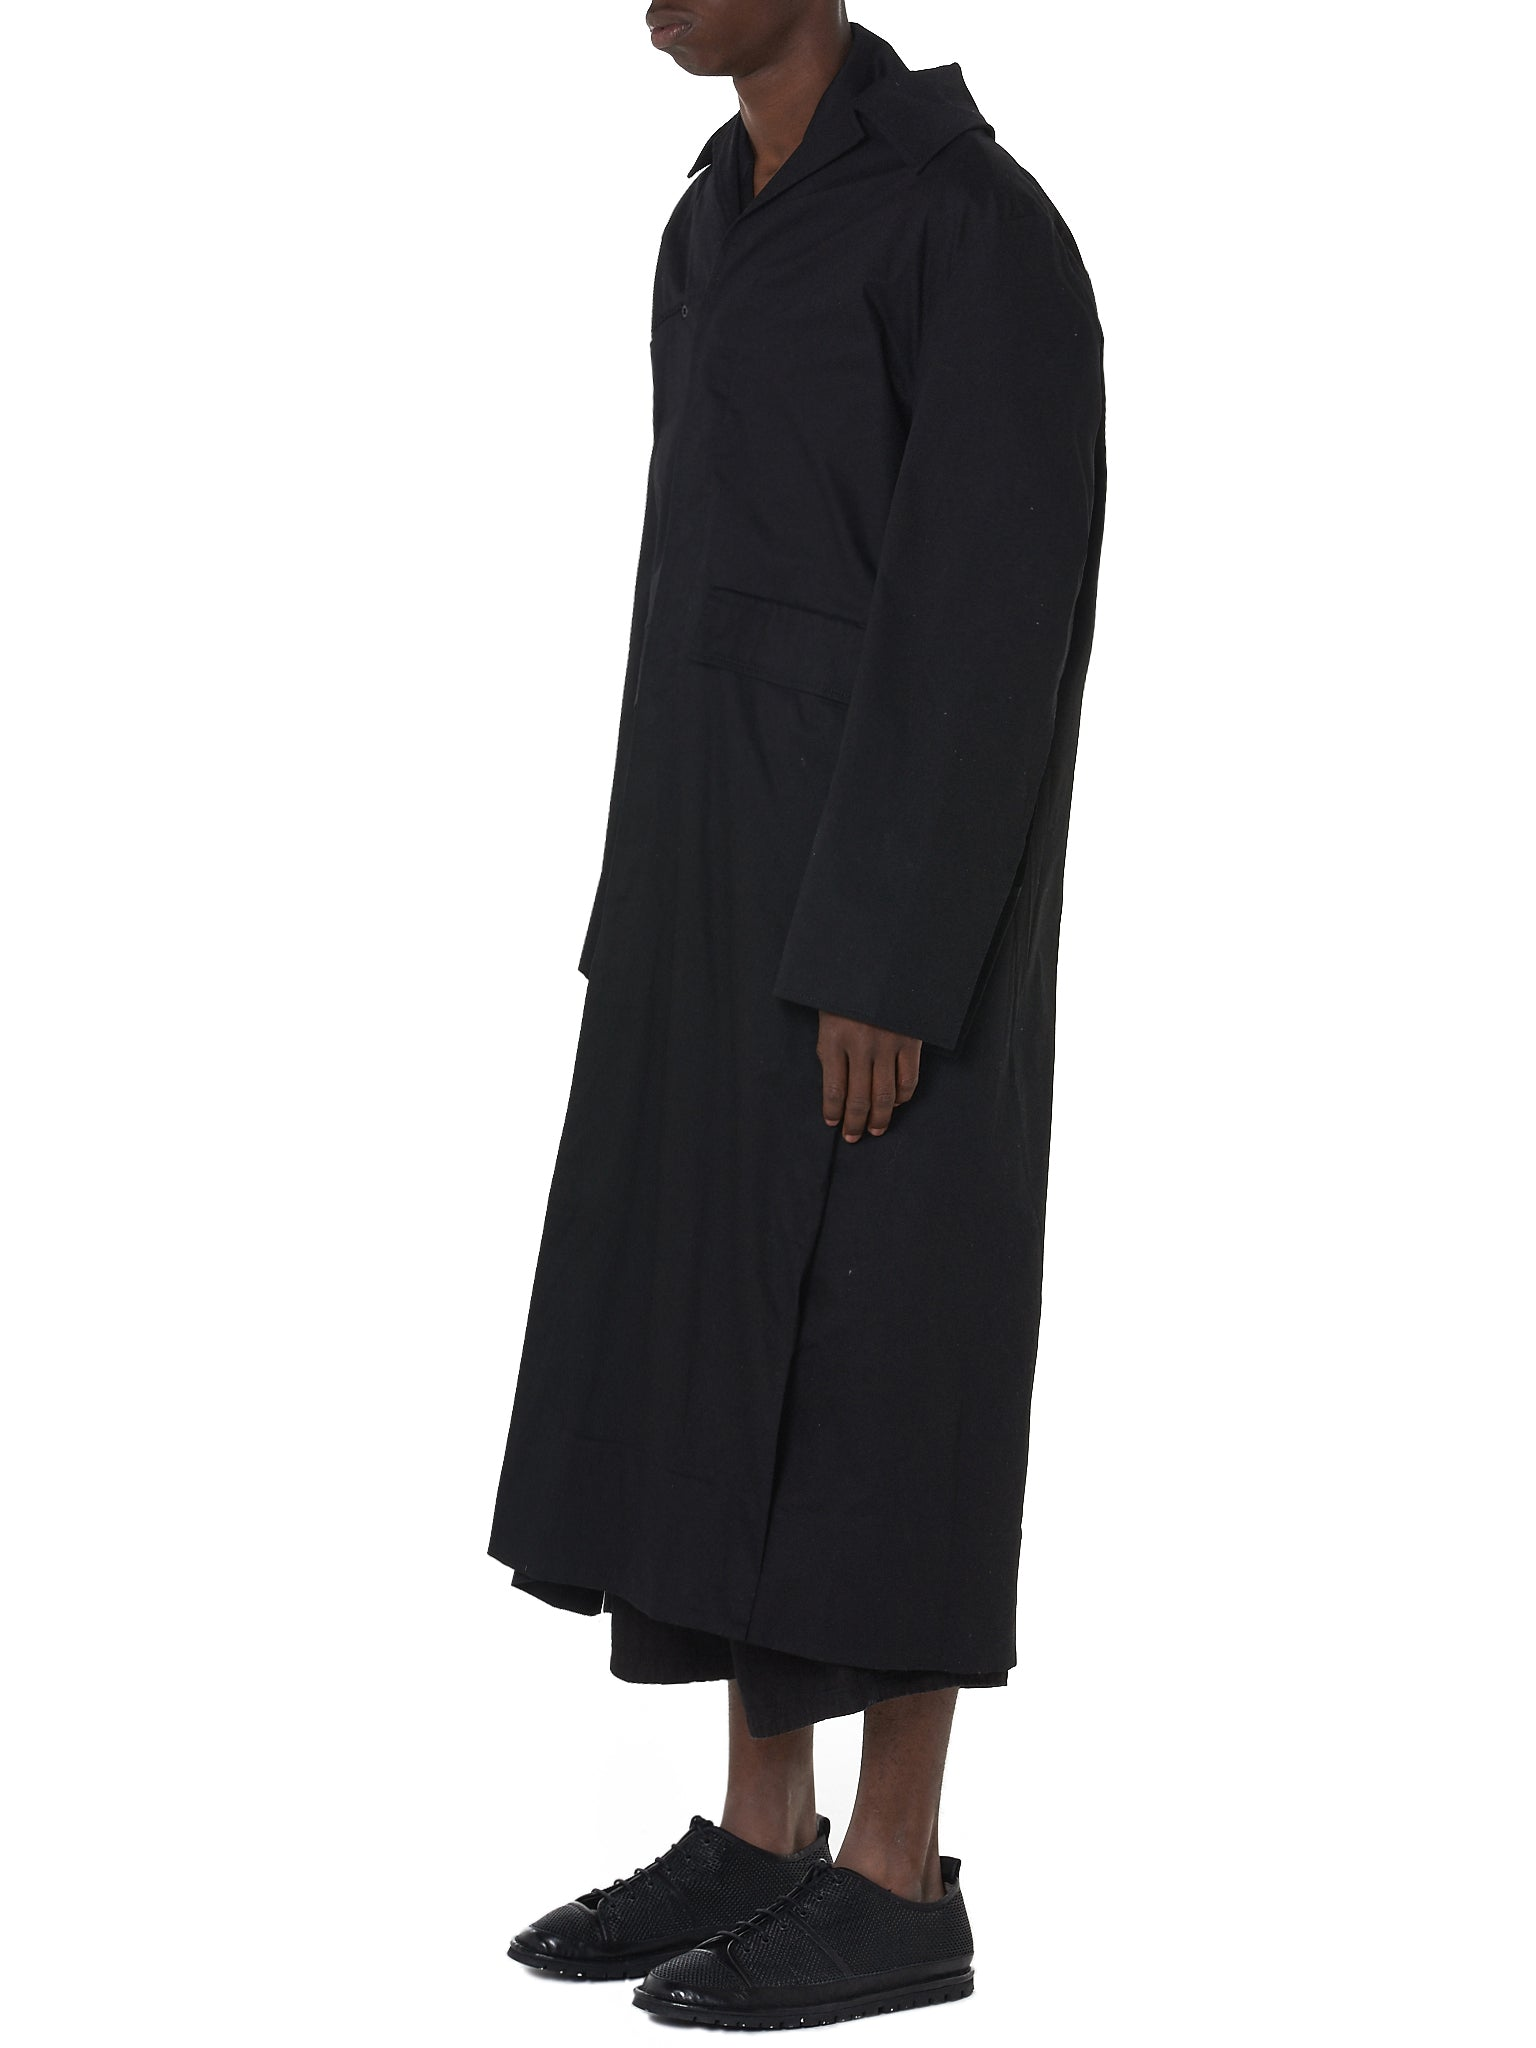 Ximon Lee Coat - Hlorenzo Side